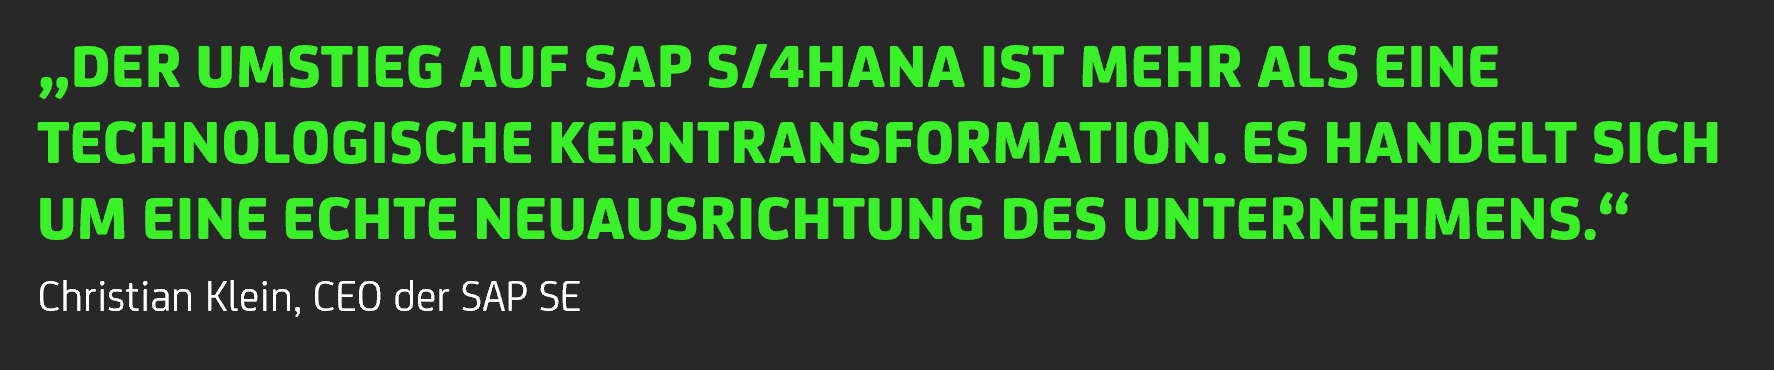 https://cpc-ag.de/wp-content/uploads/2018/07/s4hana-warum-veraenderungsmanagement-1774x370.png